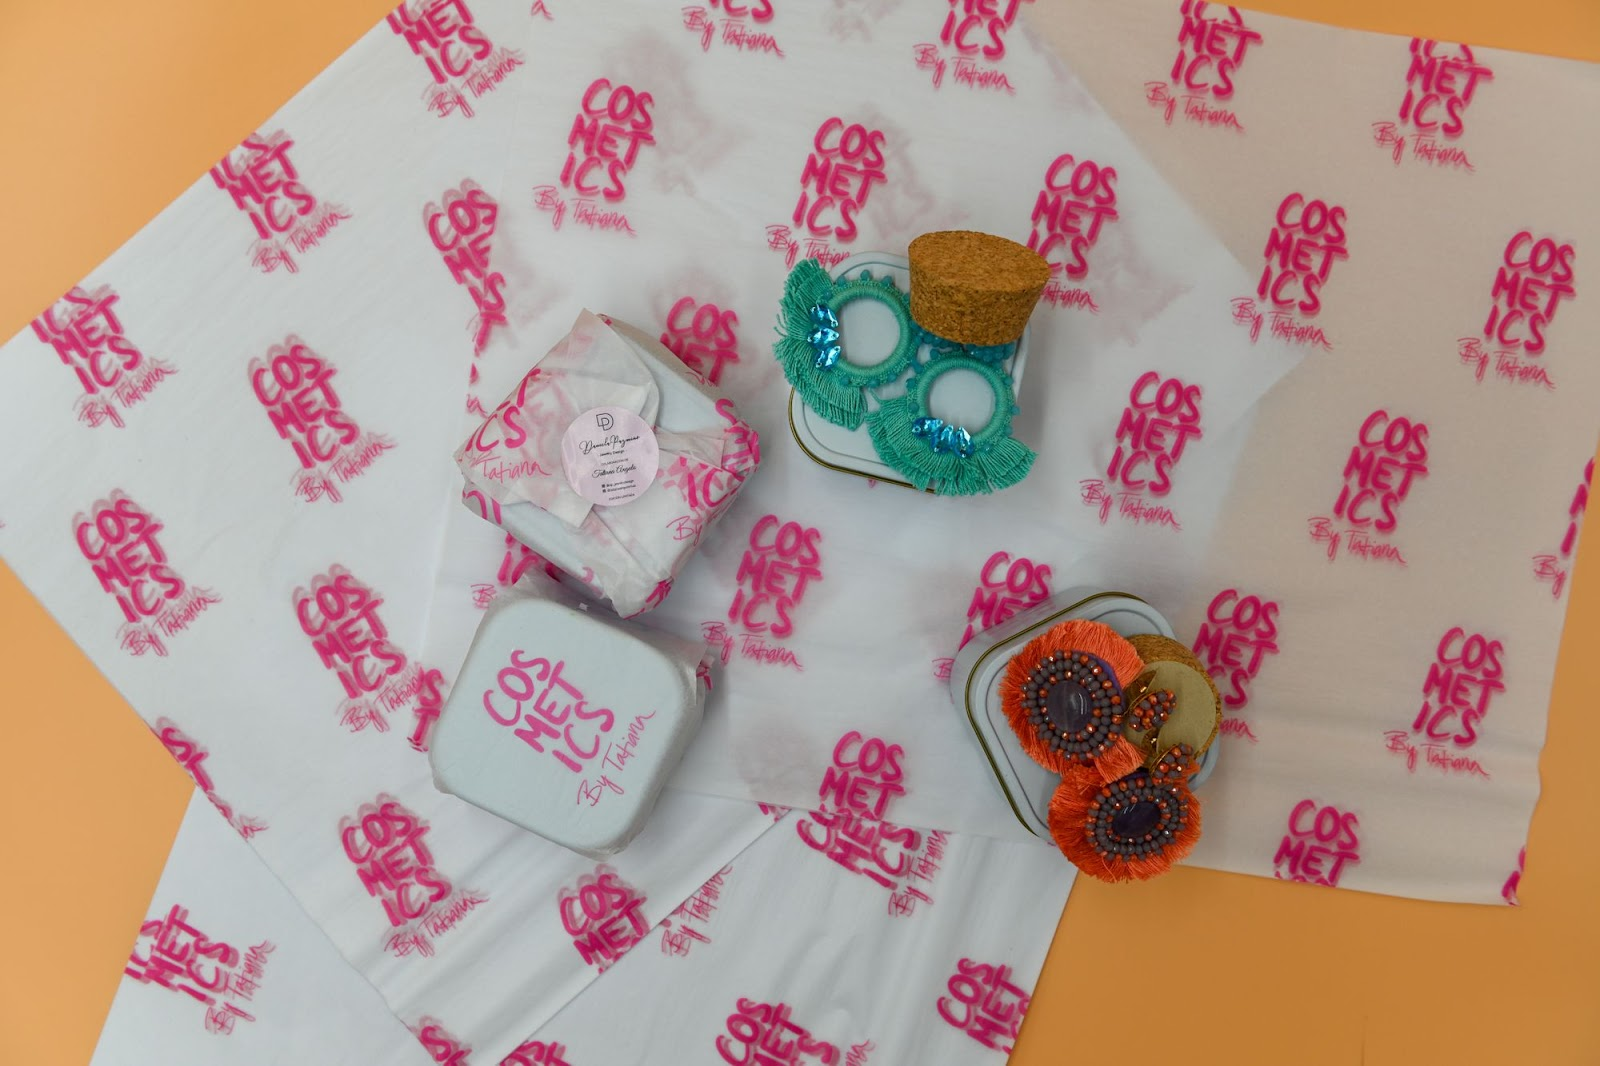 Earrings and tissue paper packaging